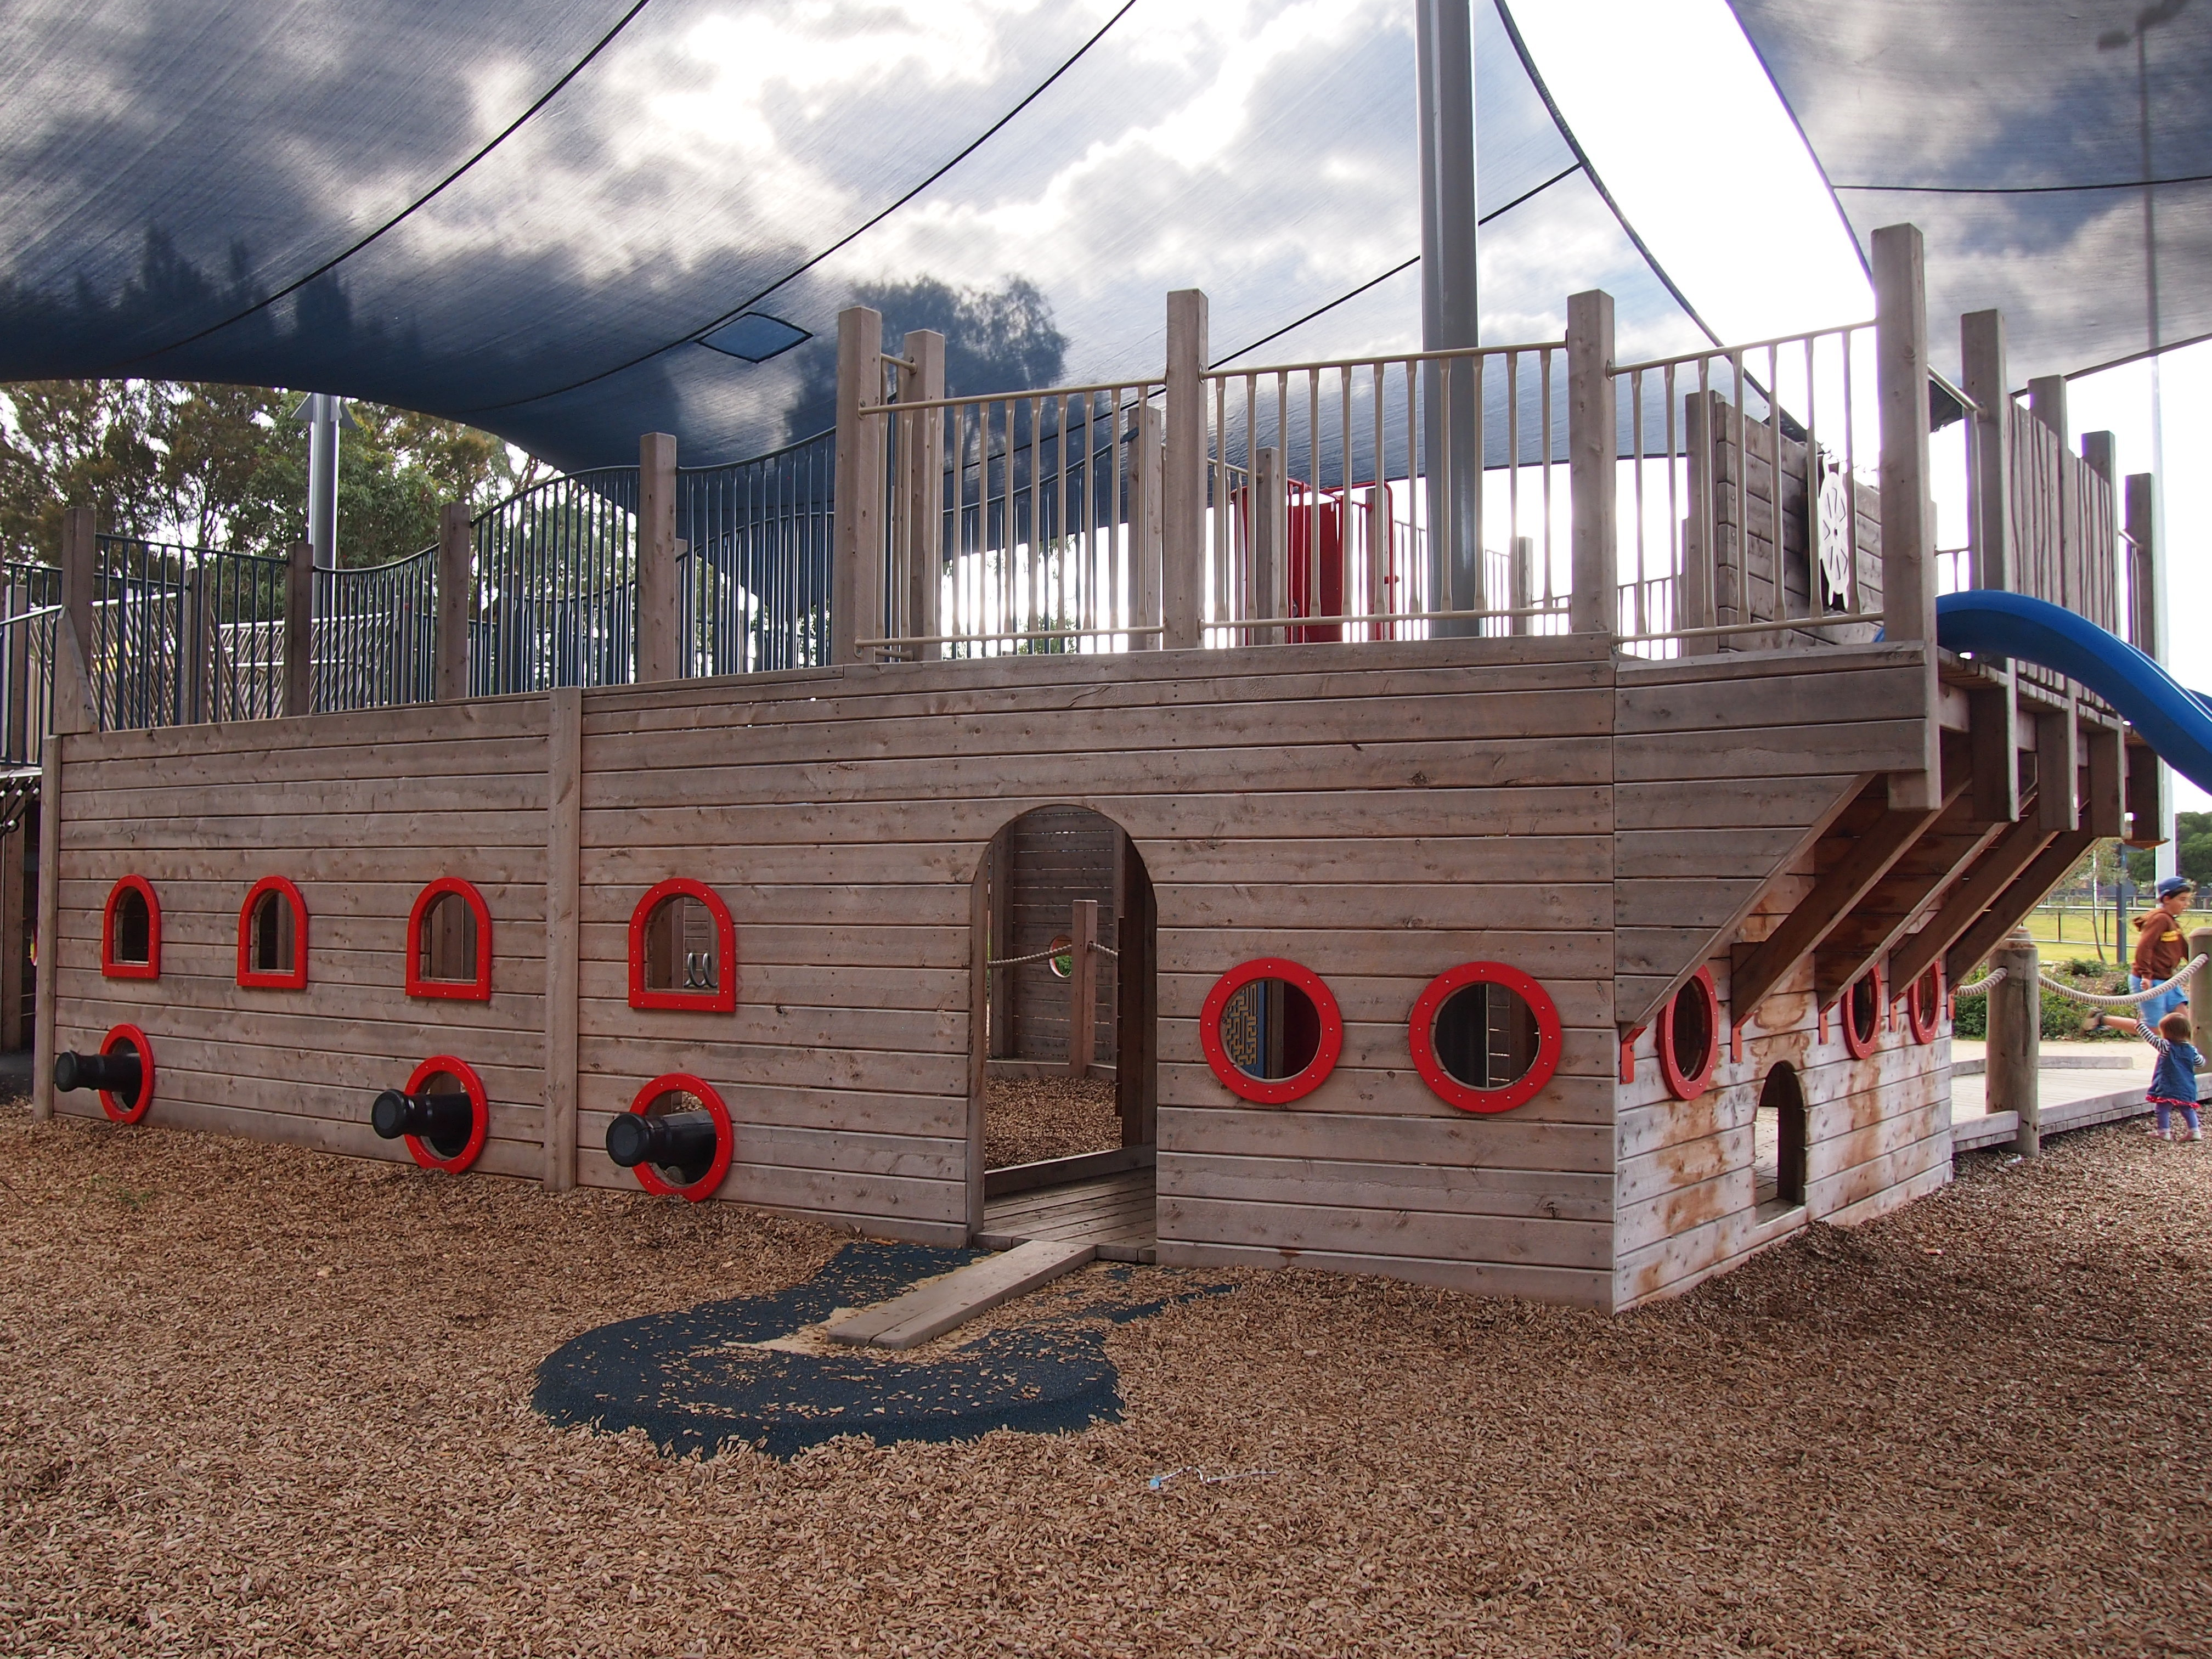 Pirate Ship Playground At Carrum Roy Dore Reserve Melbourne